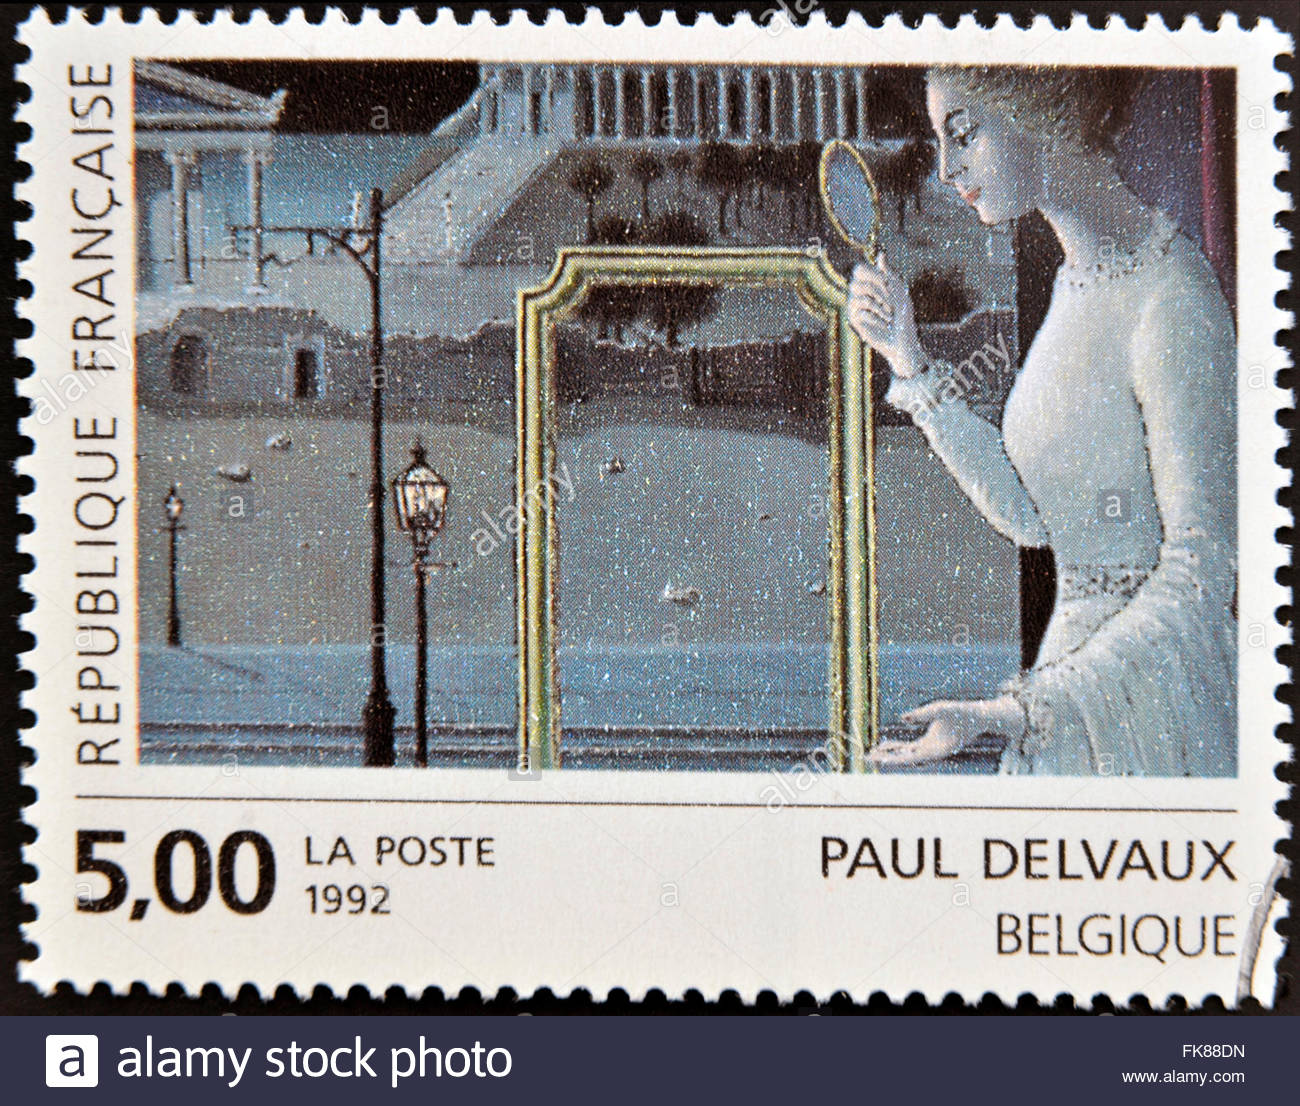 FRANCE - CIRCA 1992: A stamp printed in France shows T circa 1992 - Stock Image